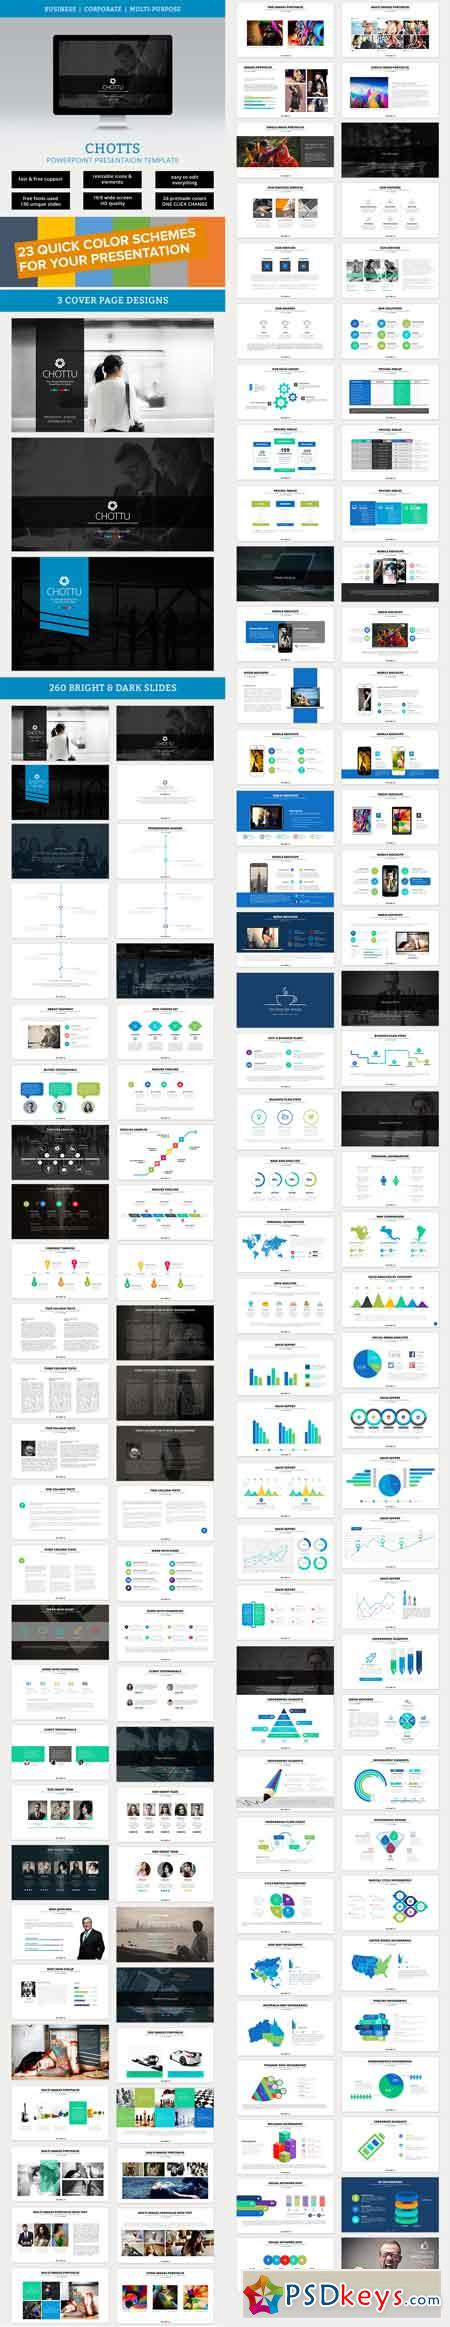 powerpoint templates torrents - chotts powerpoint template 13602894 free download